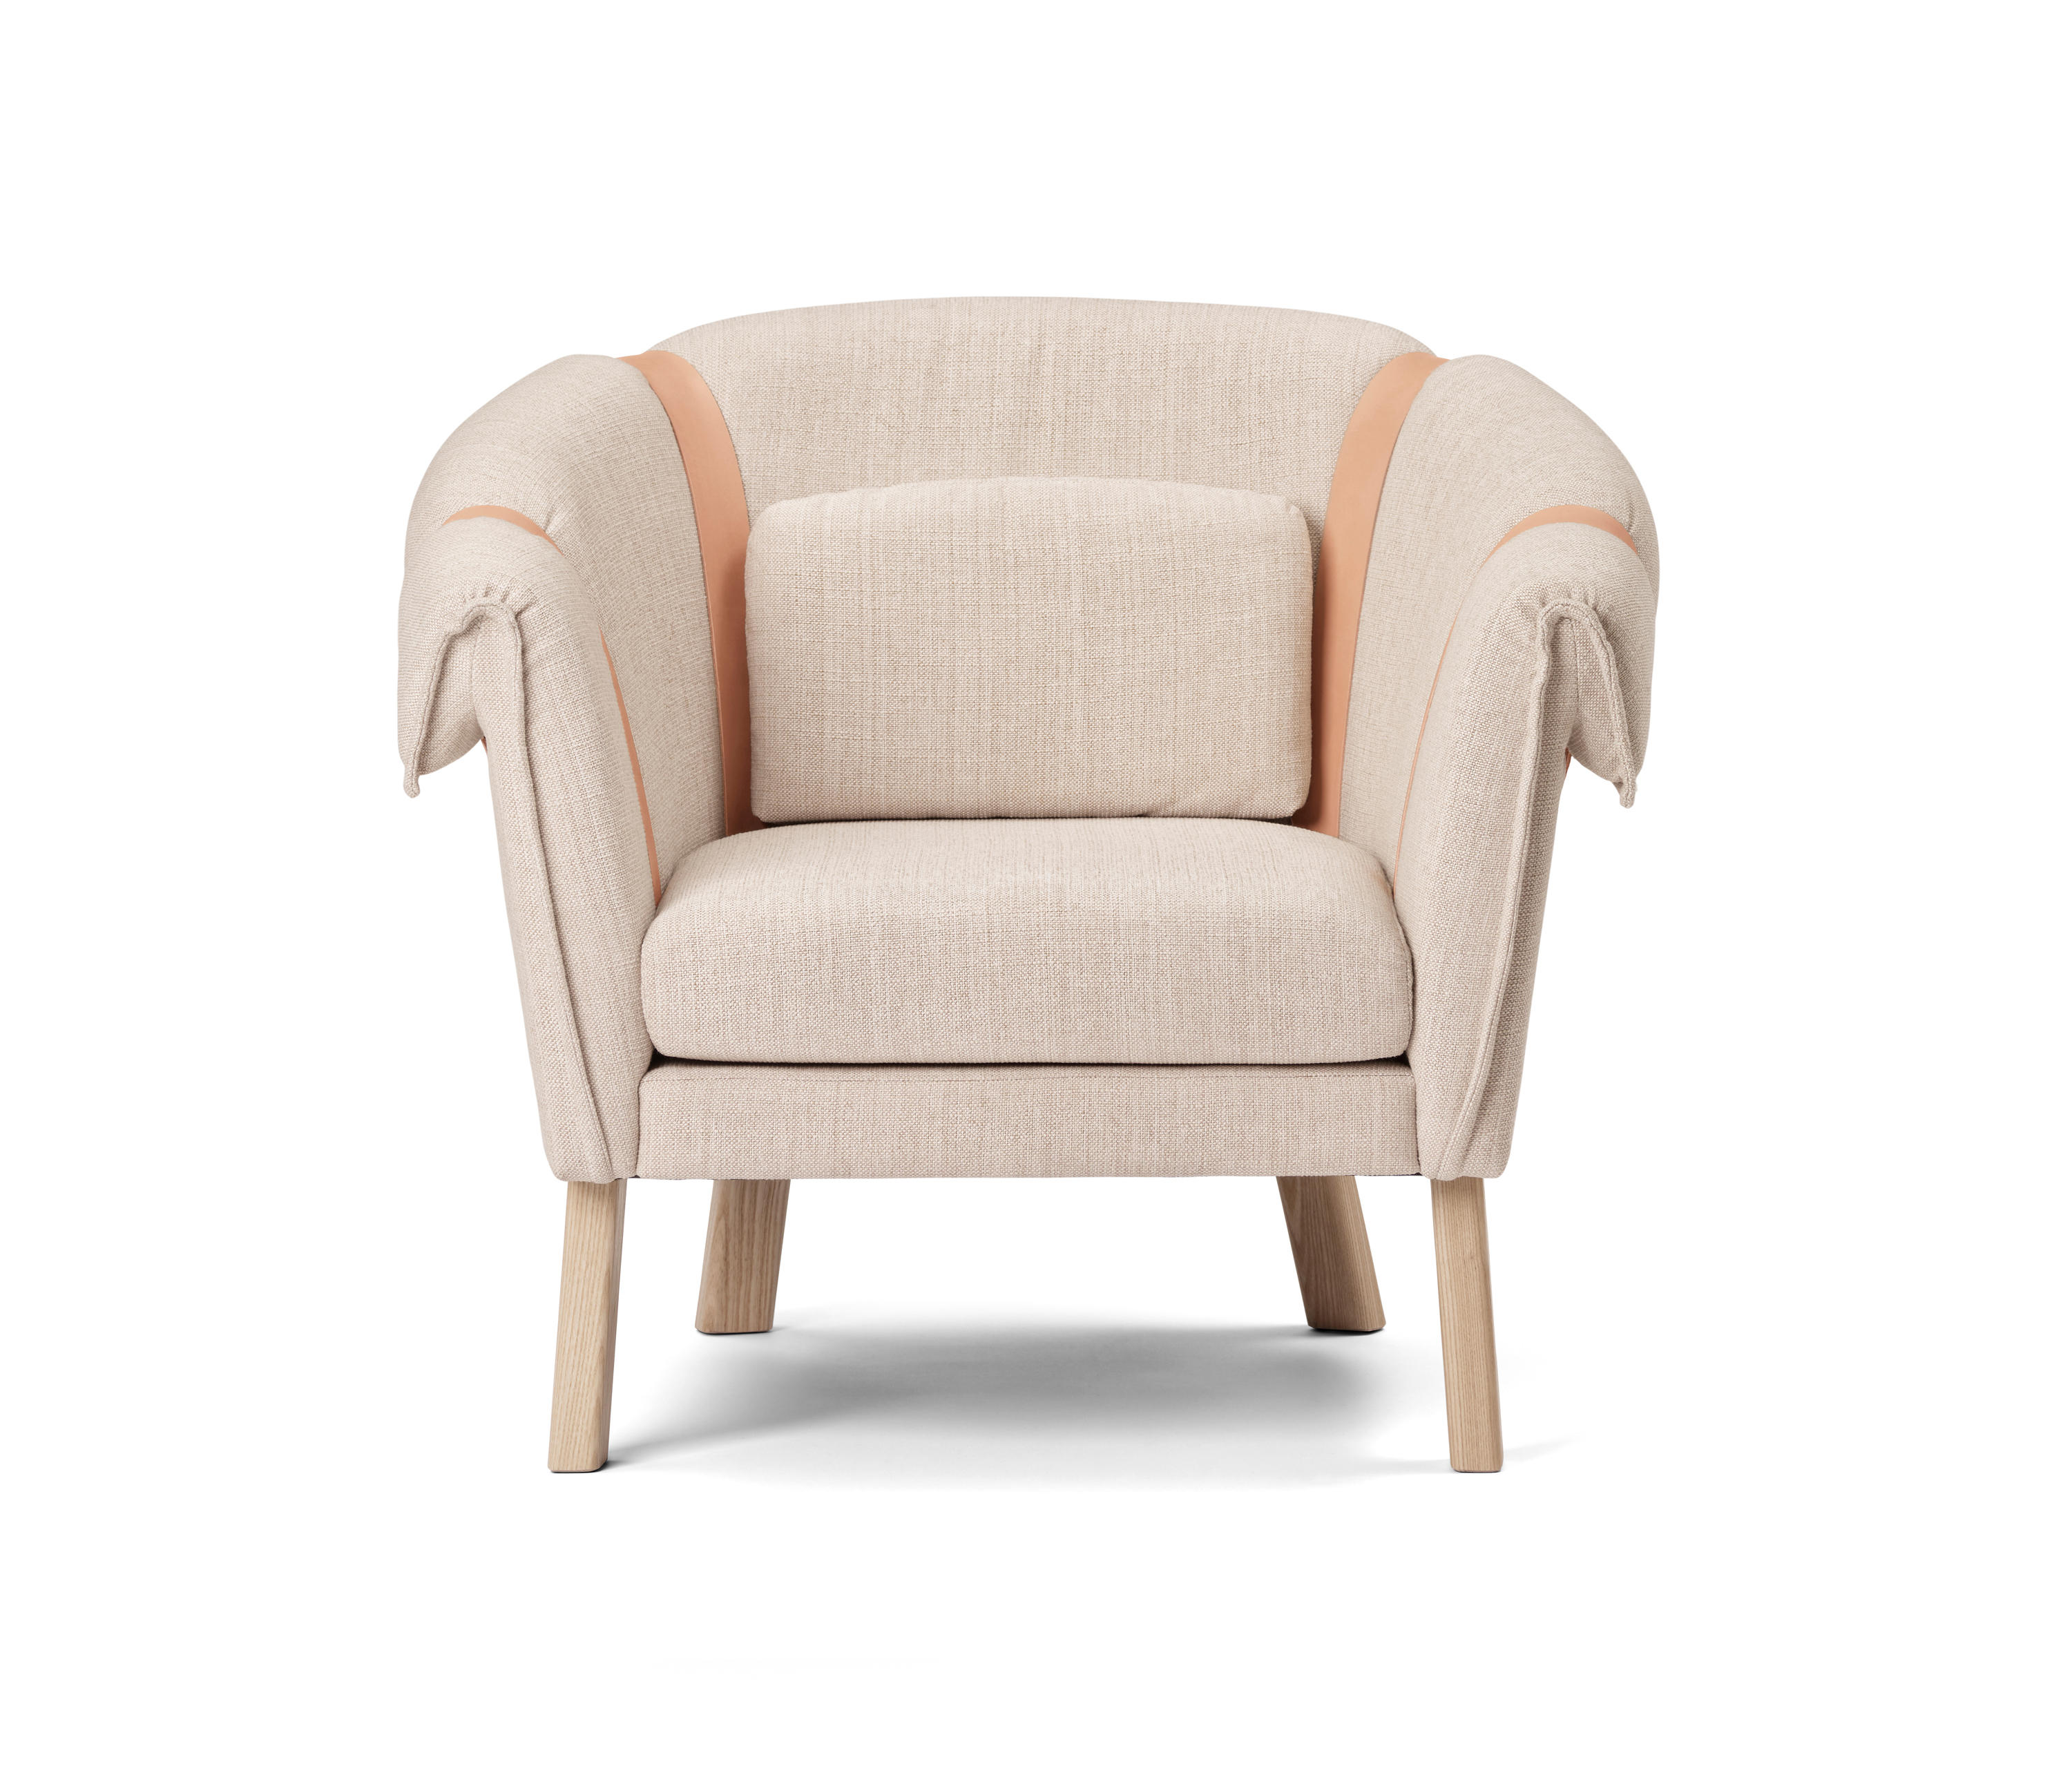 Ram Easy Chair Sessel Von Design House Stockholm Architonic